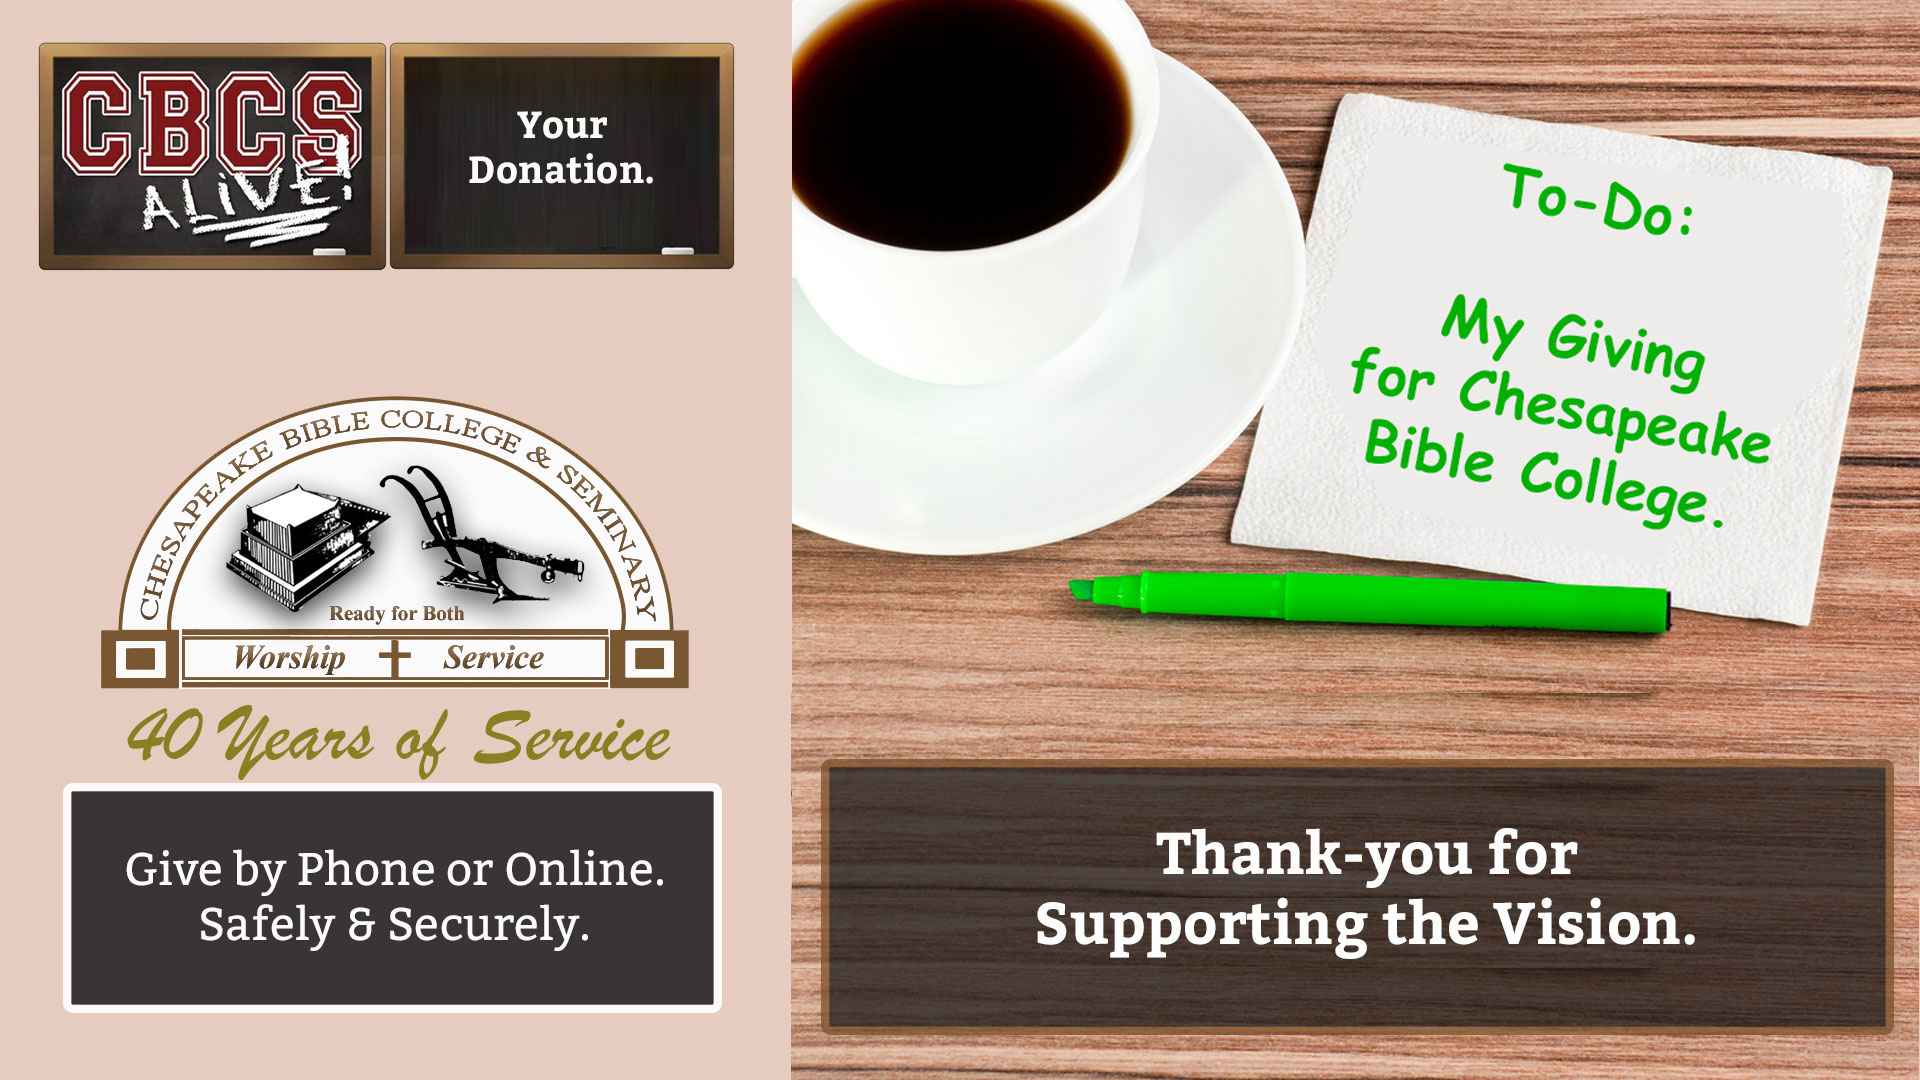 Chesapeake Bible College & Seminary - Your Donation